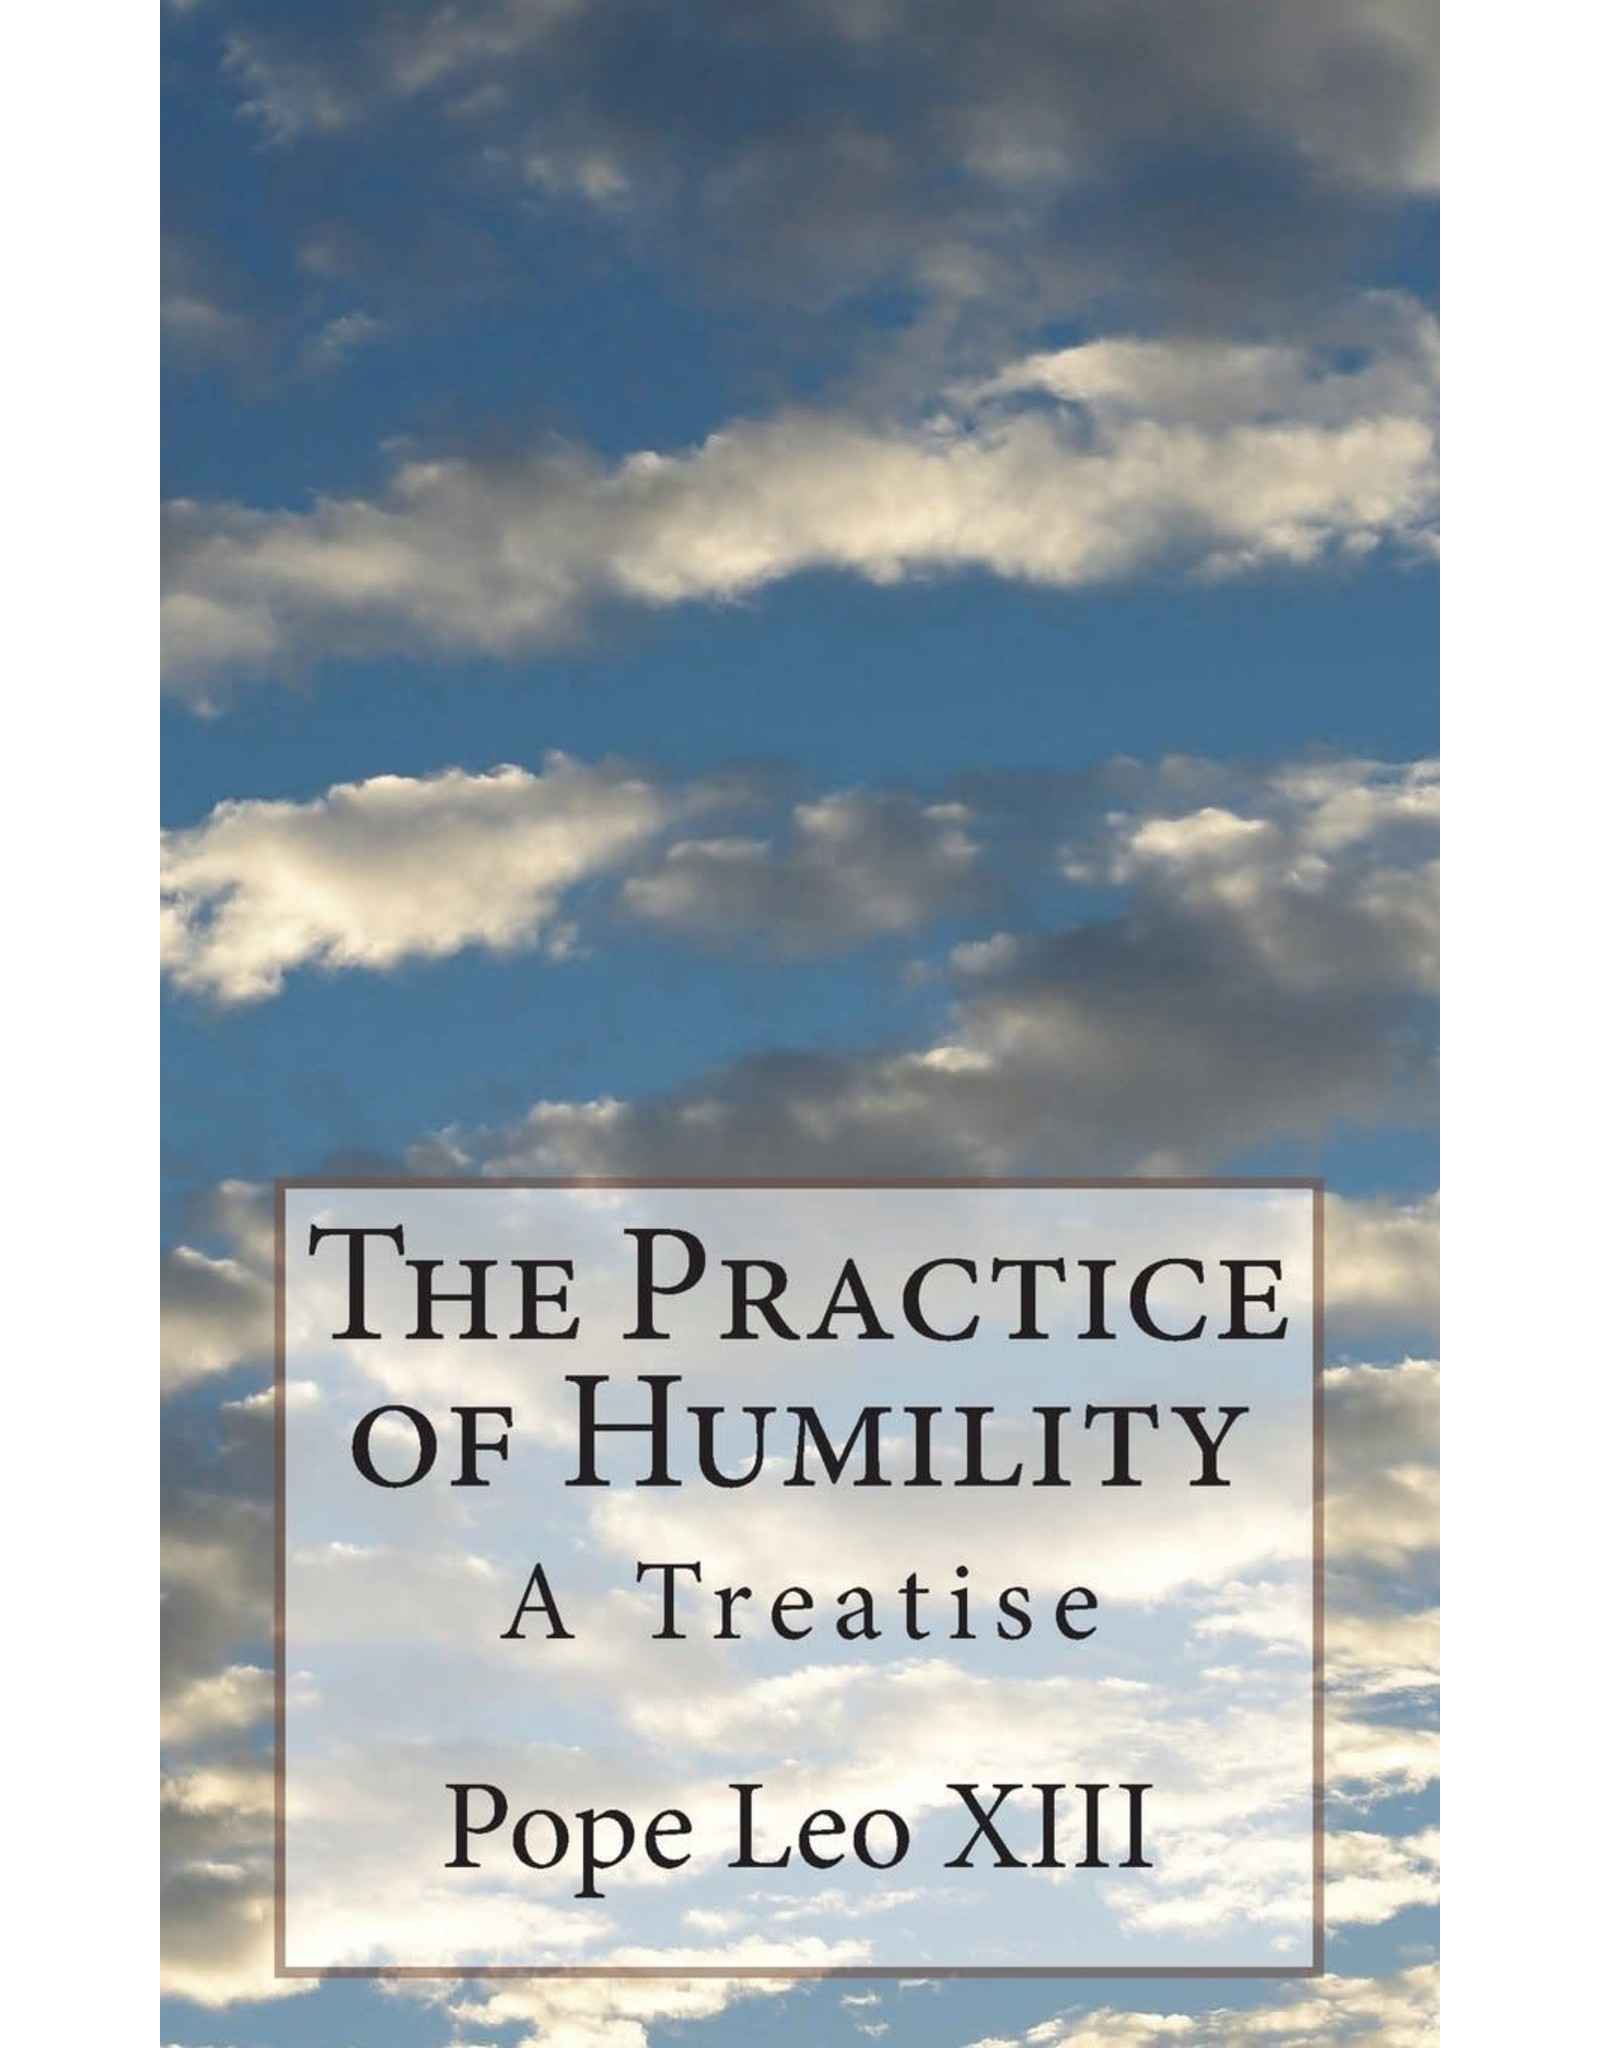 The Practic of Humility:  A Treatise